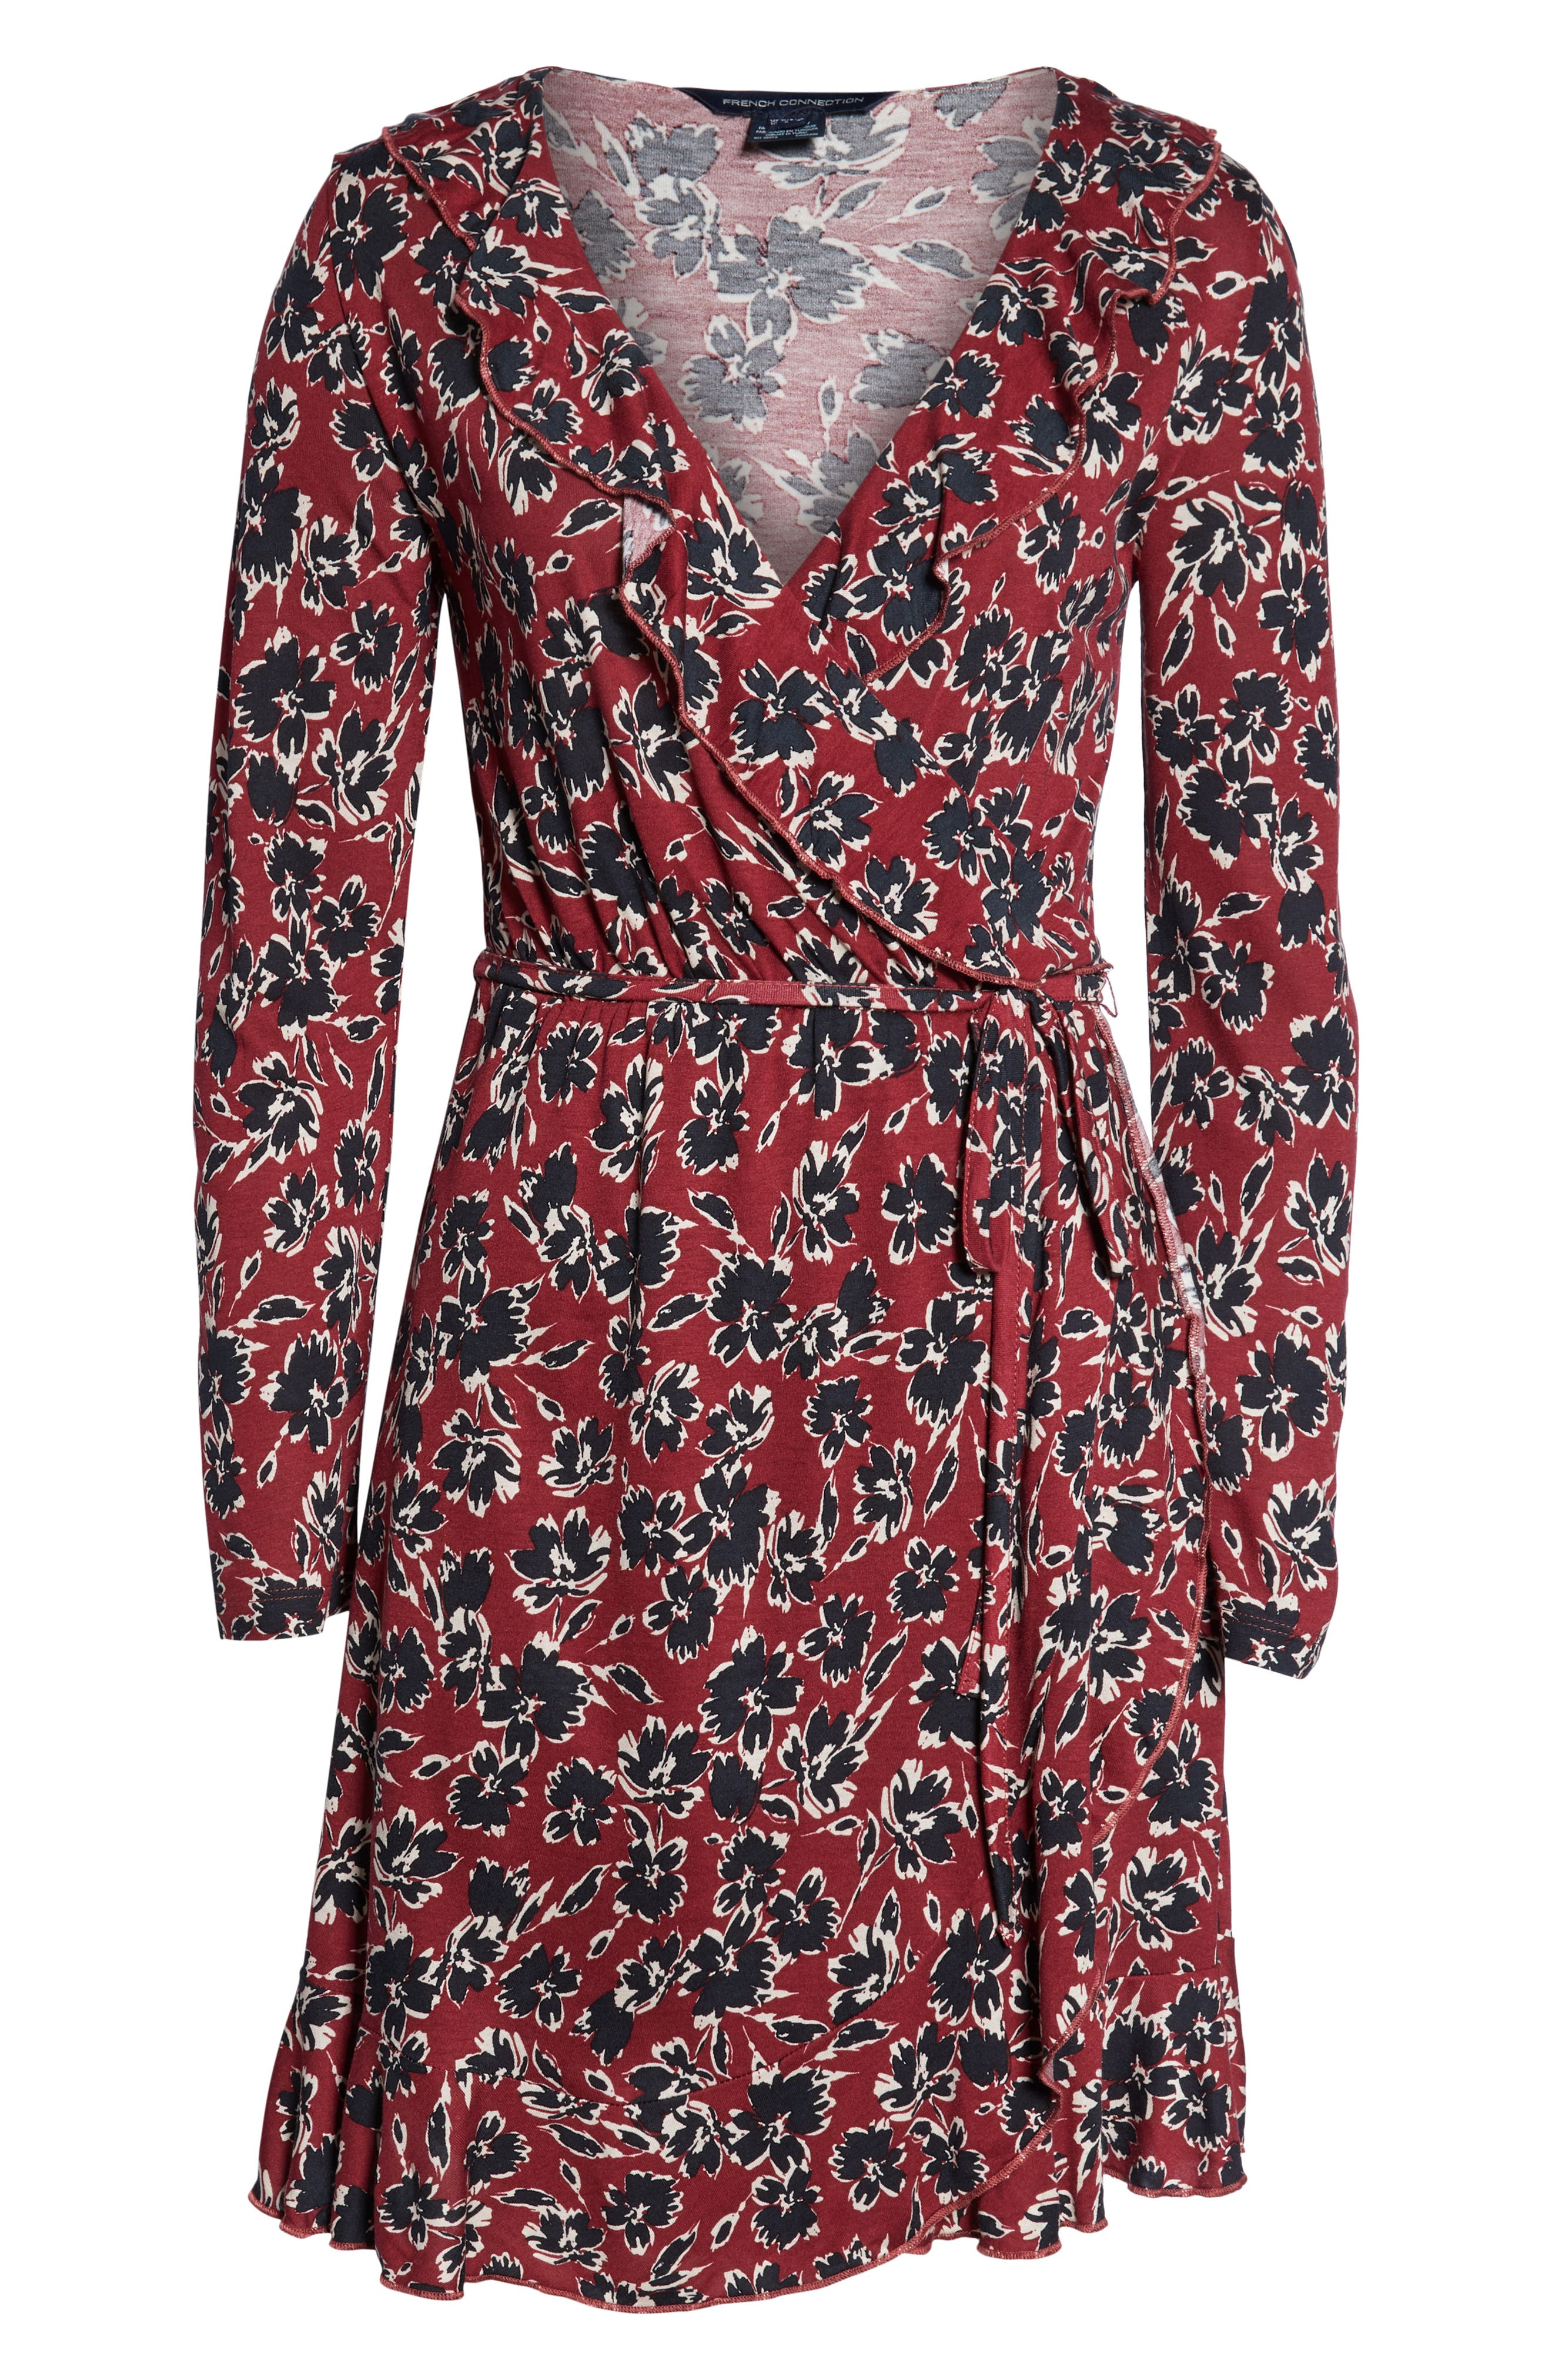 FRENCH CONNECTION,                             Aubi Meadow Jersey Dress,                             Alternate thumbnail 7, color,                             ROSSO RED MULTI